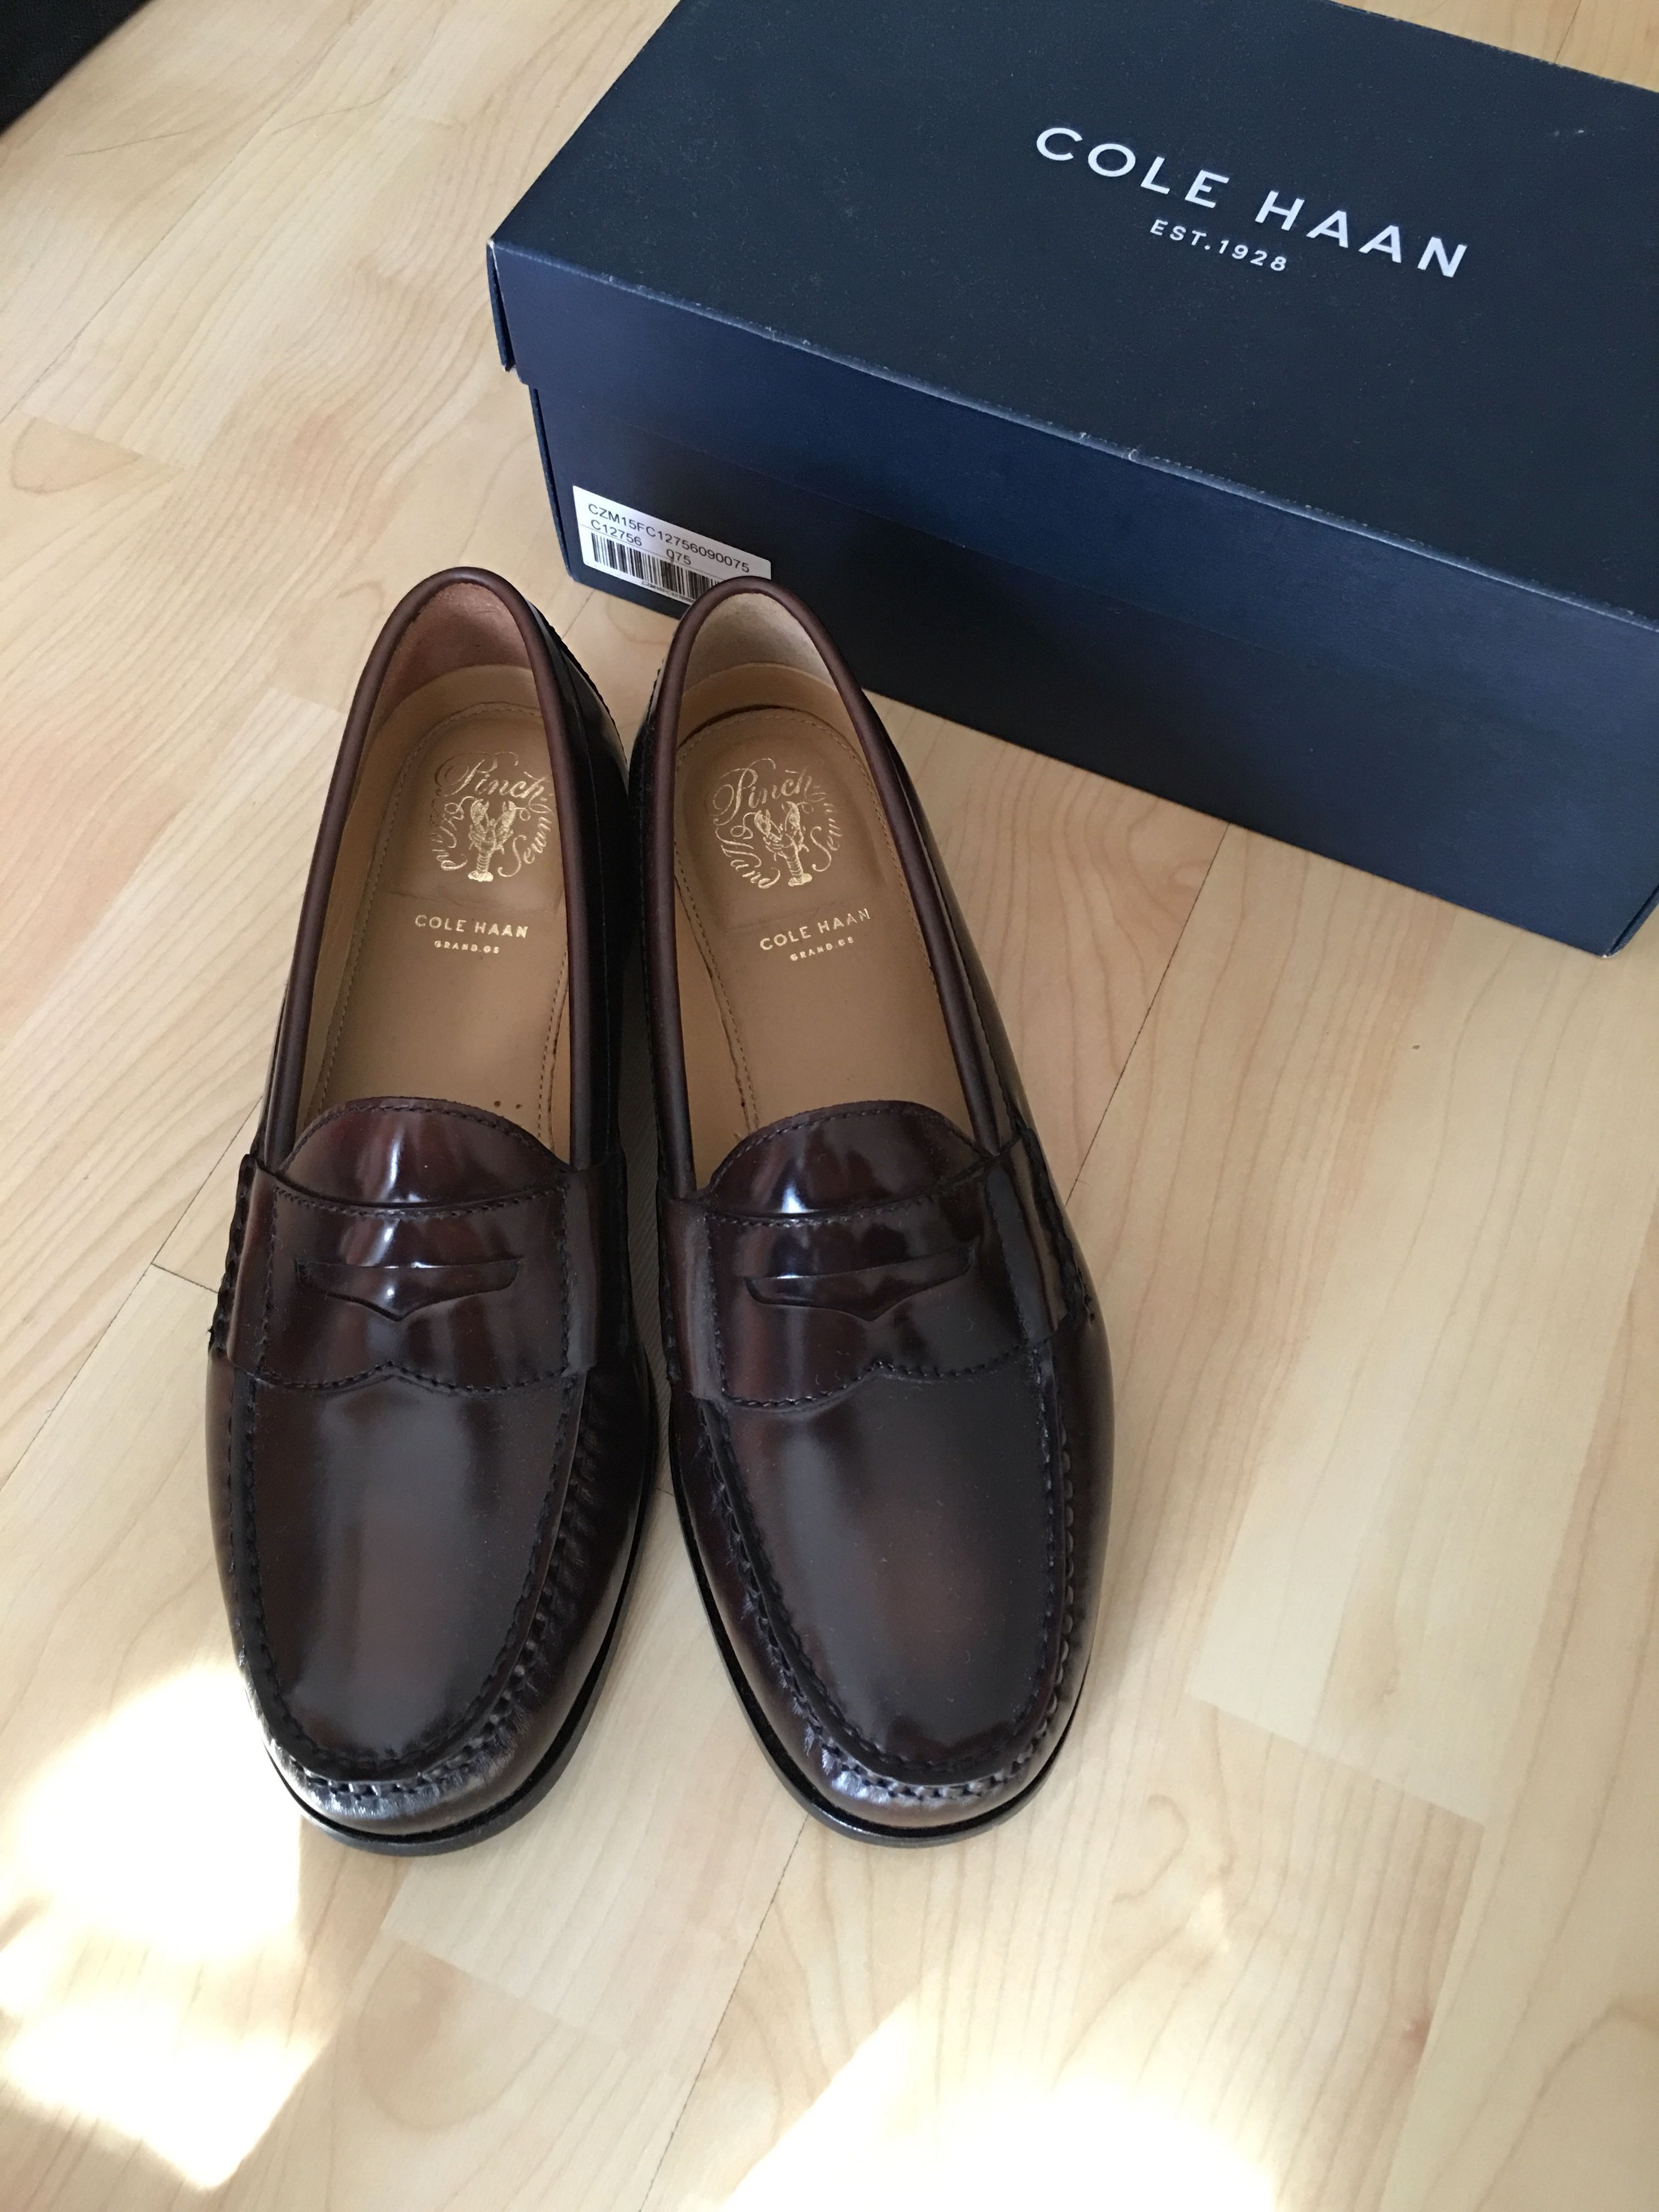 b72e12bec9a Cole haan brown pinch grand penny loafers